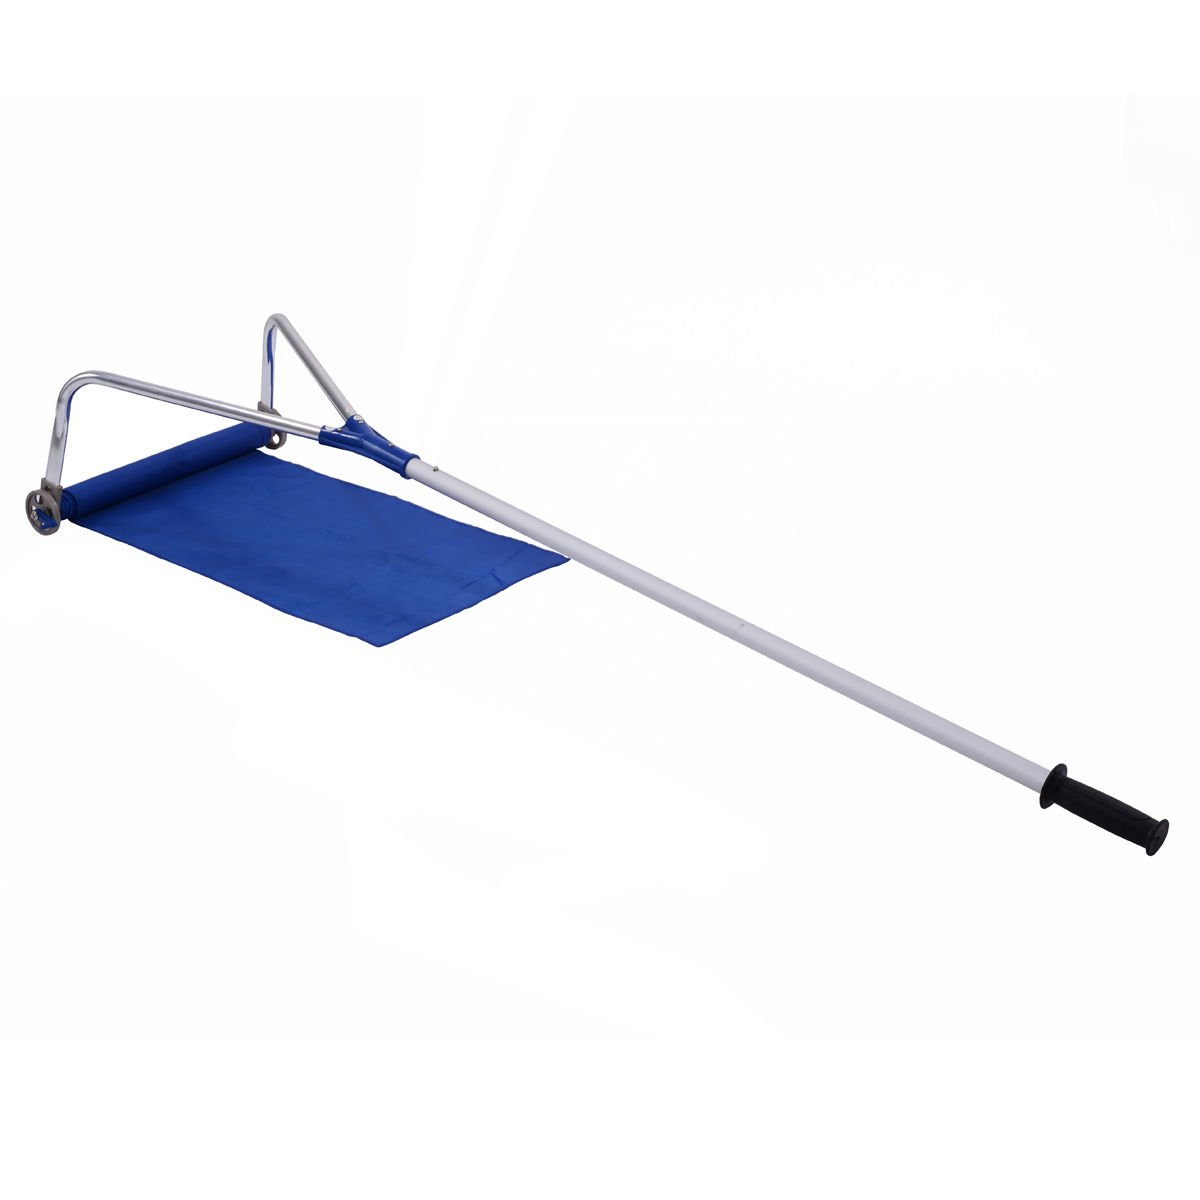 BUY JOY Lightweight Roof Rake Snow Removal Tool 20FT Adjustable Telescoping Handle